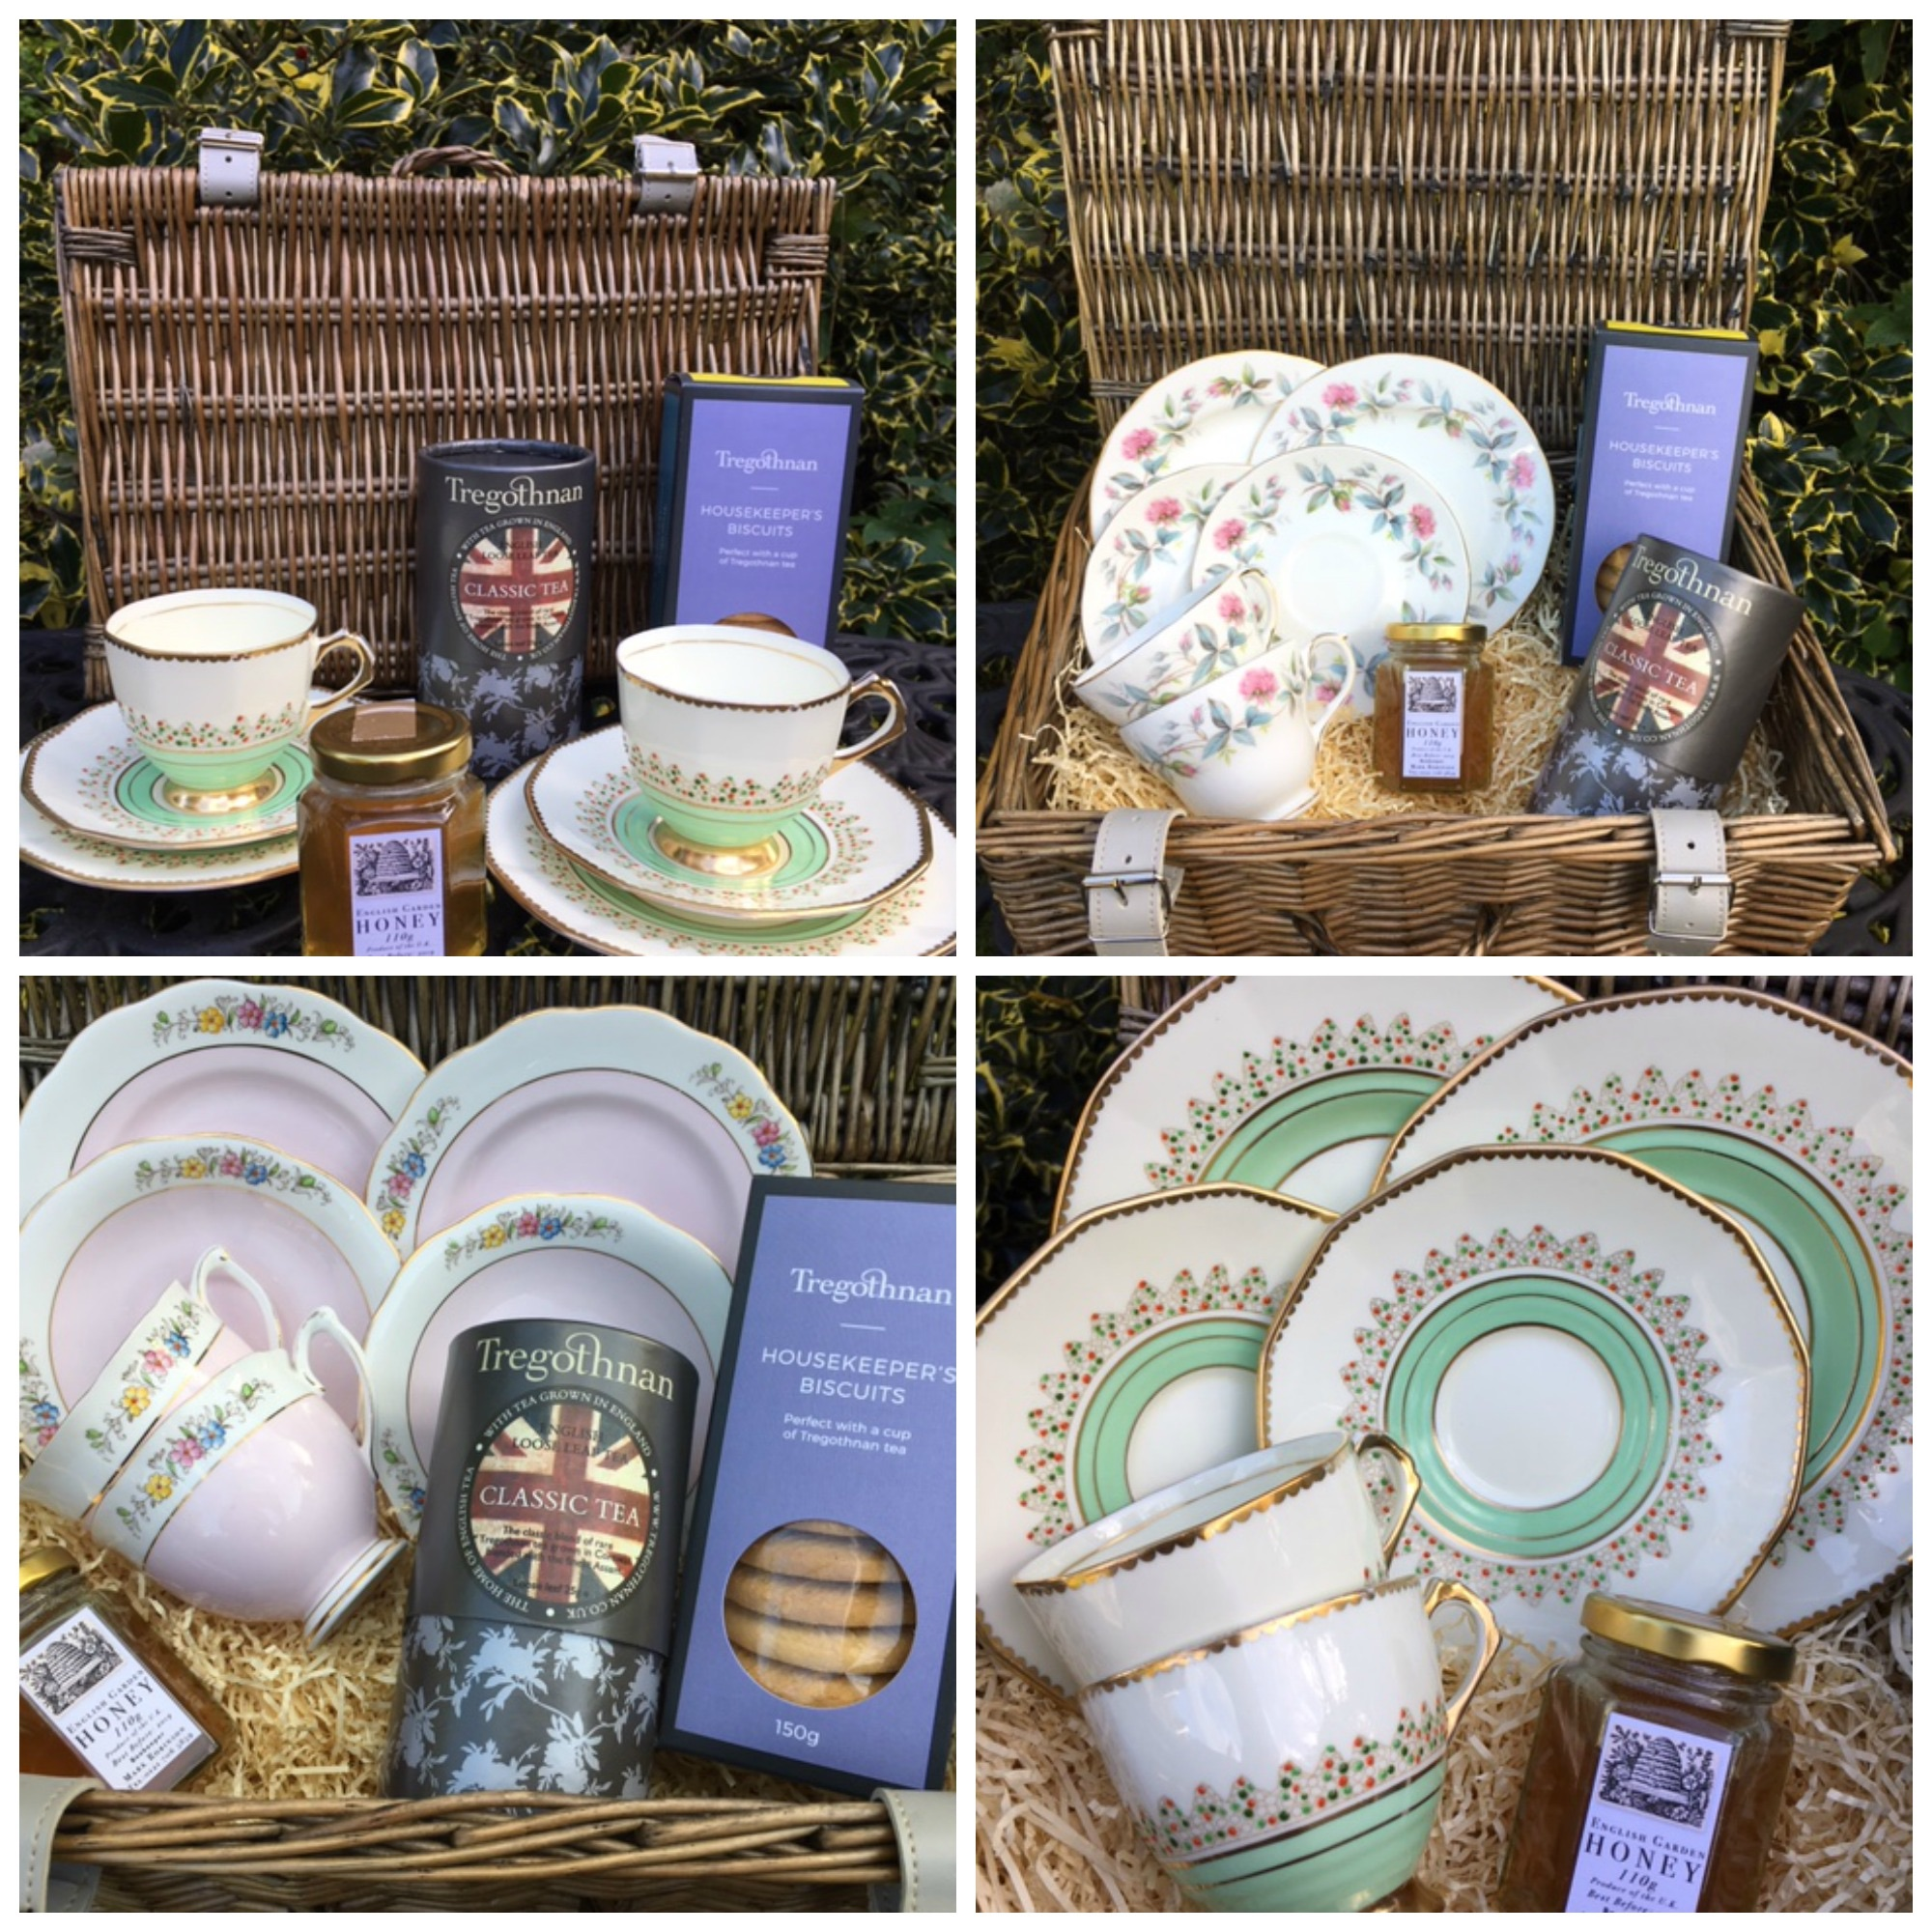 Hampers collage